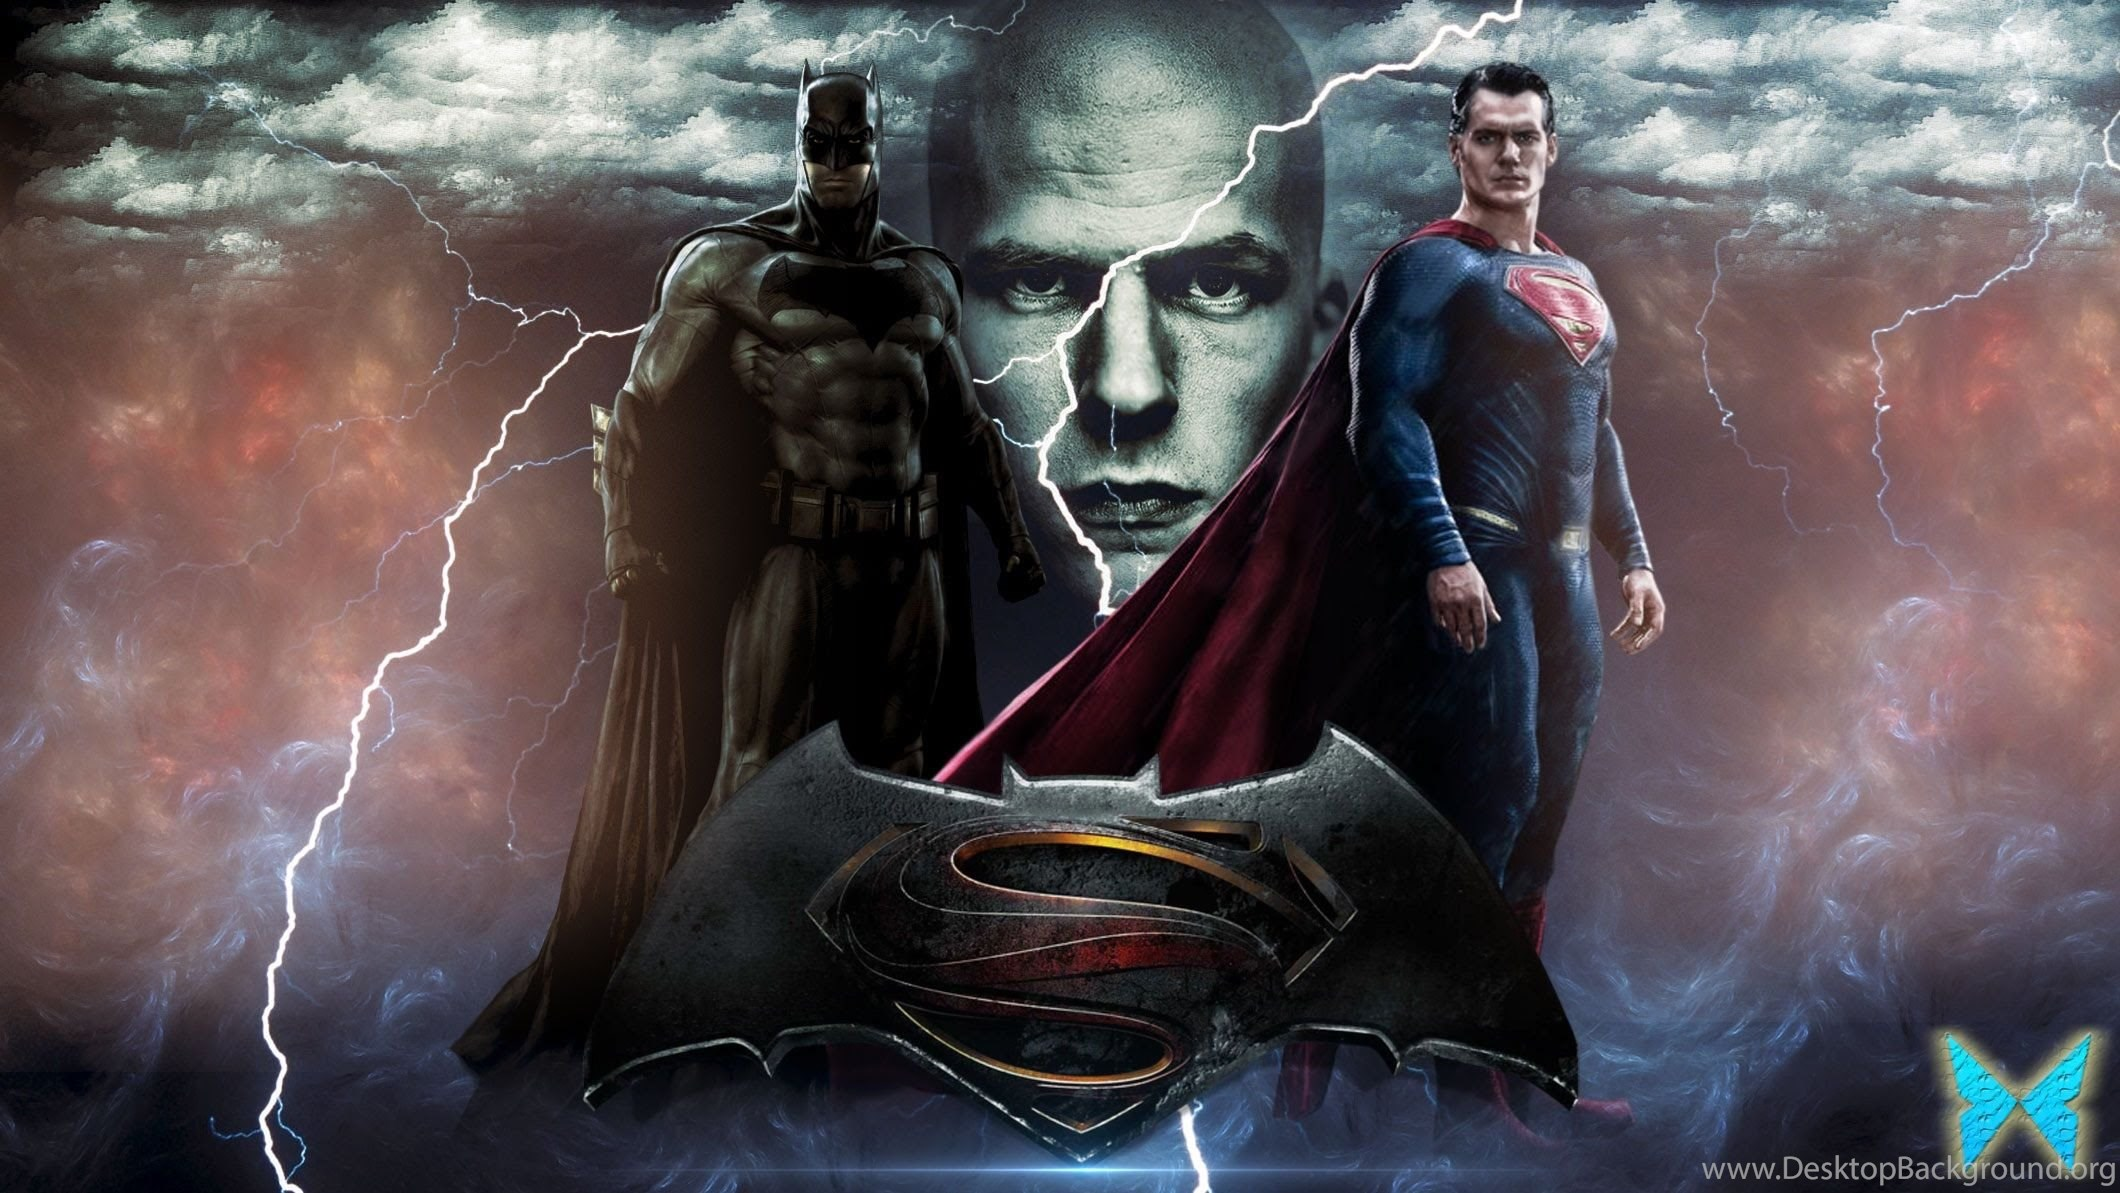 Download Download Batman Vs Superman Wallpapers For Android